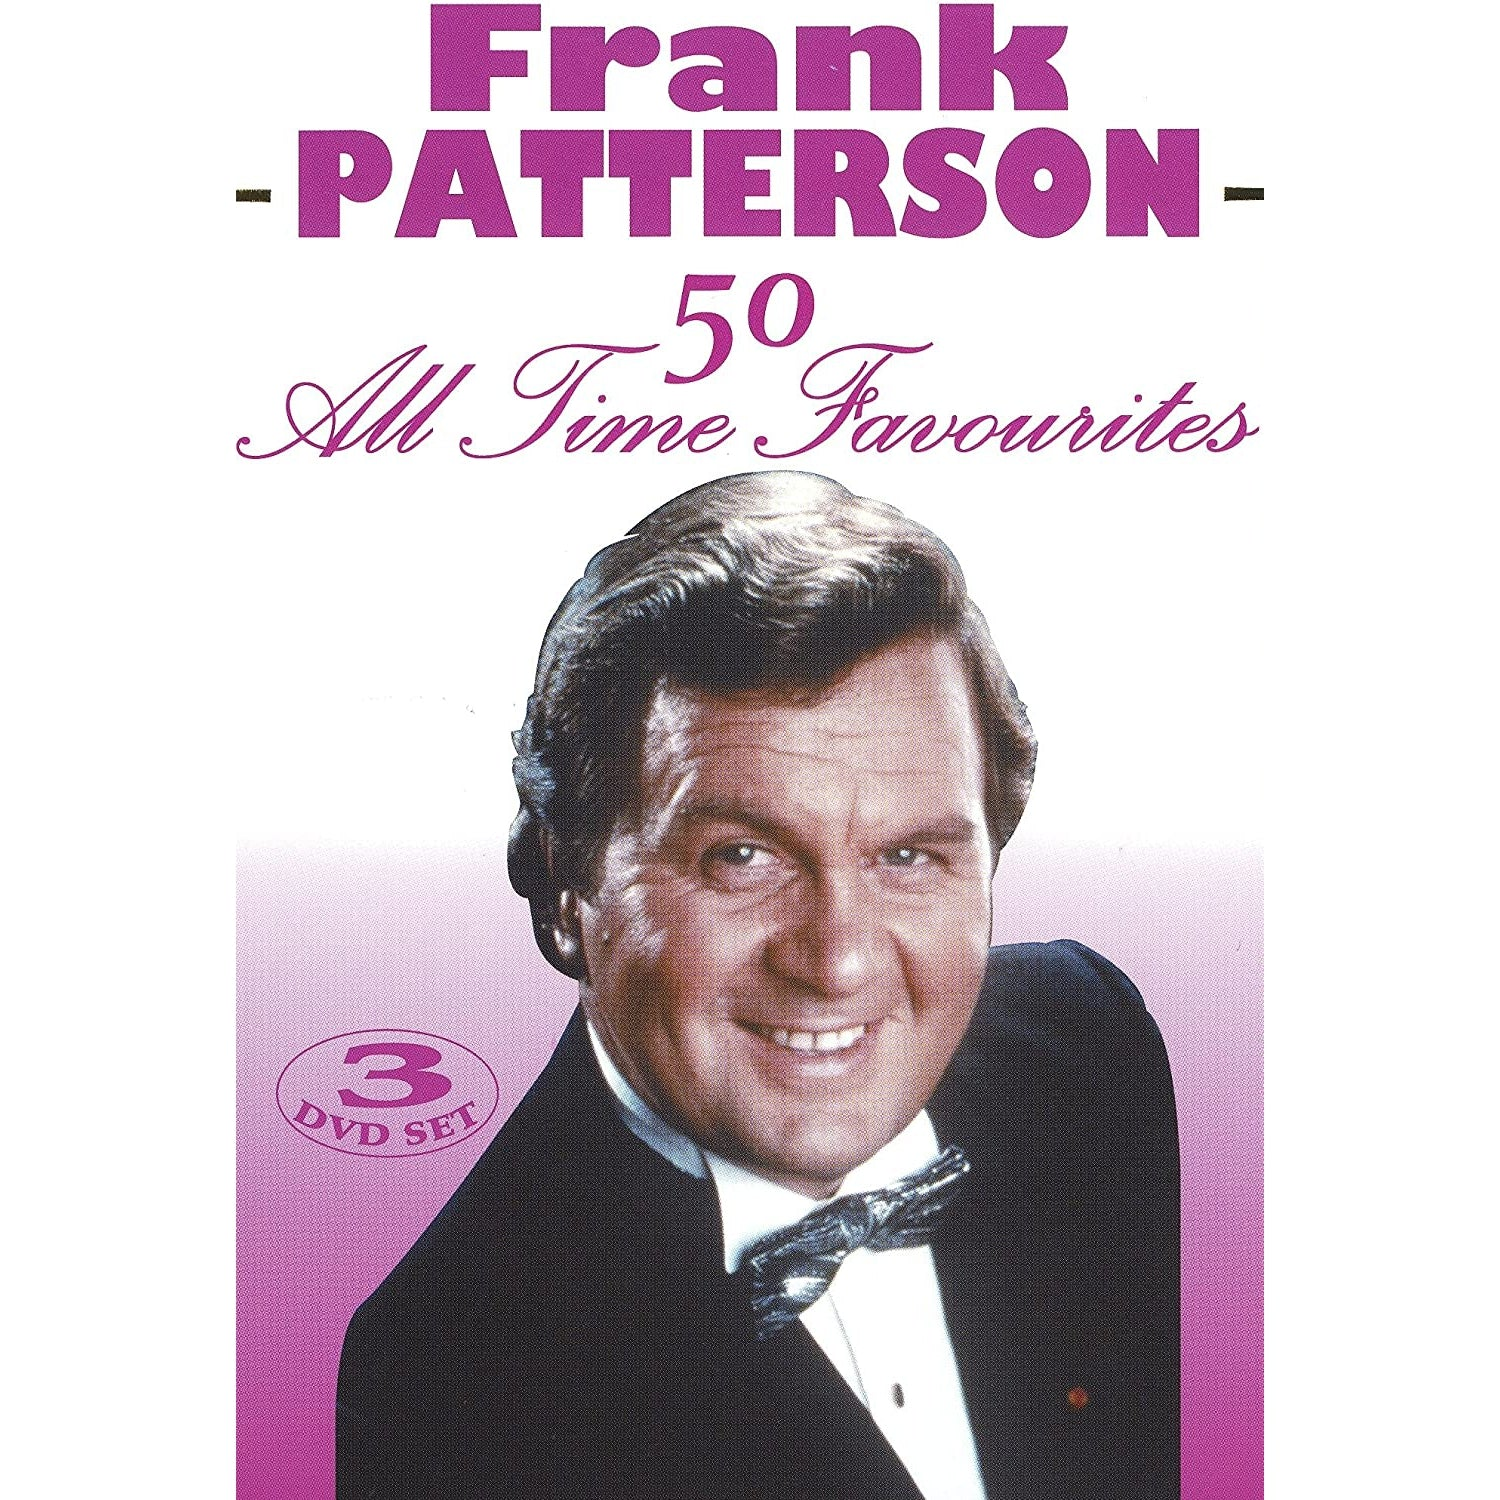 Frank Patterson - 50 All Time Favs [DVD]